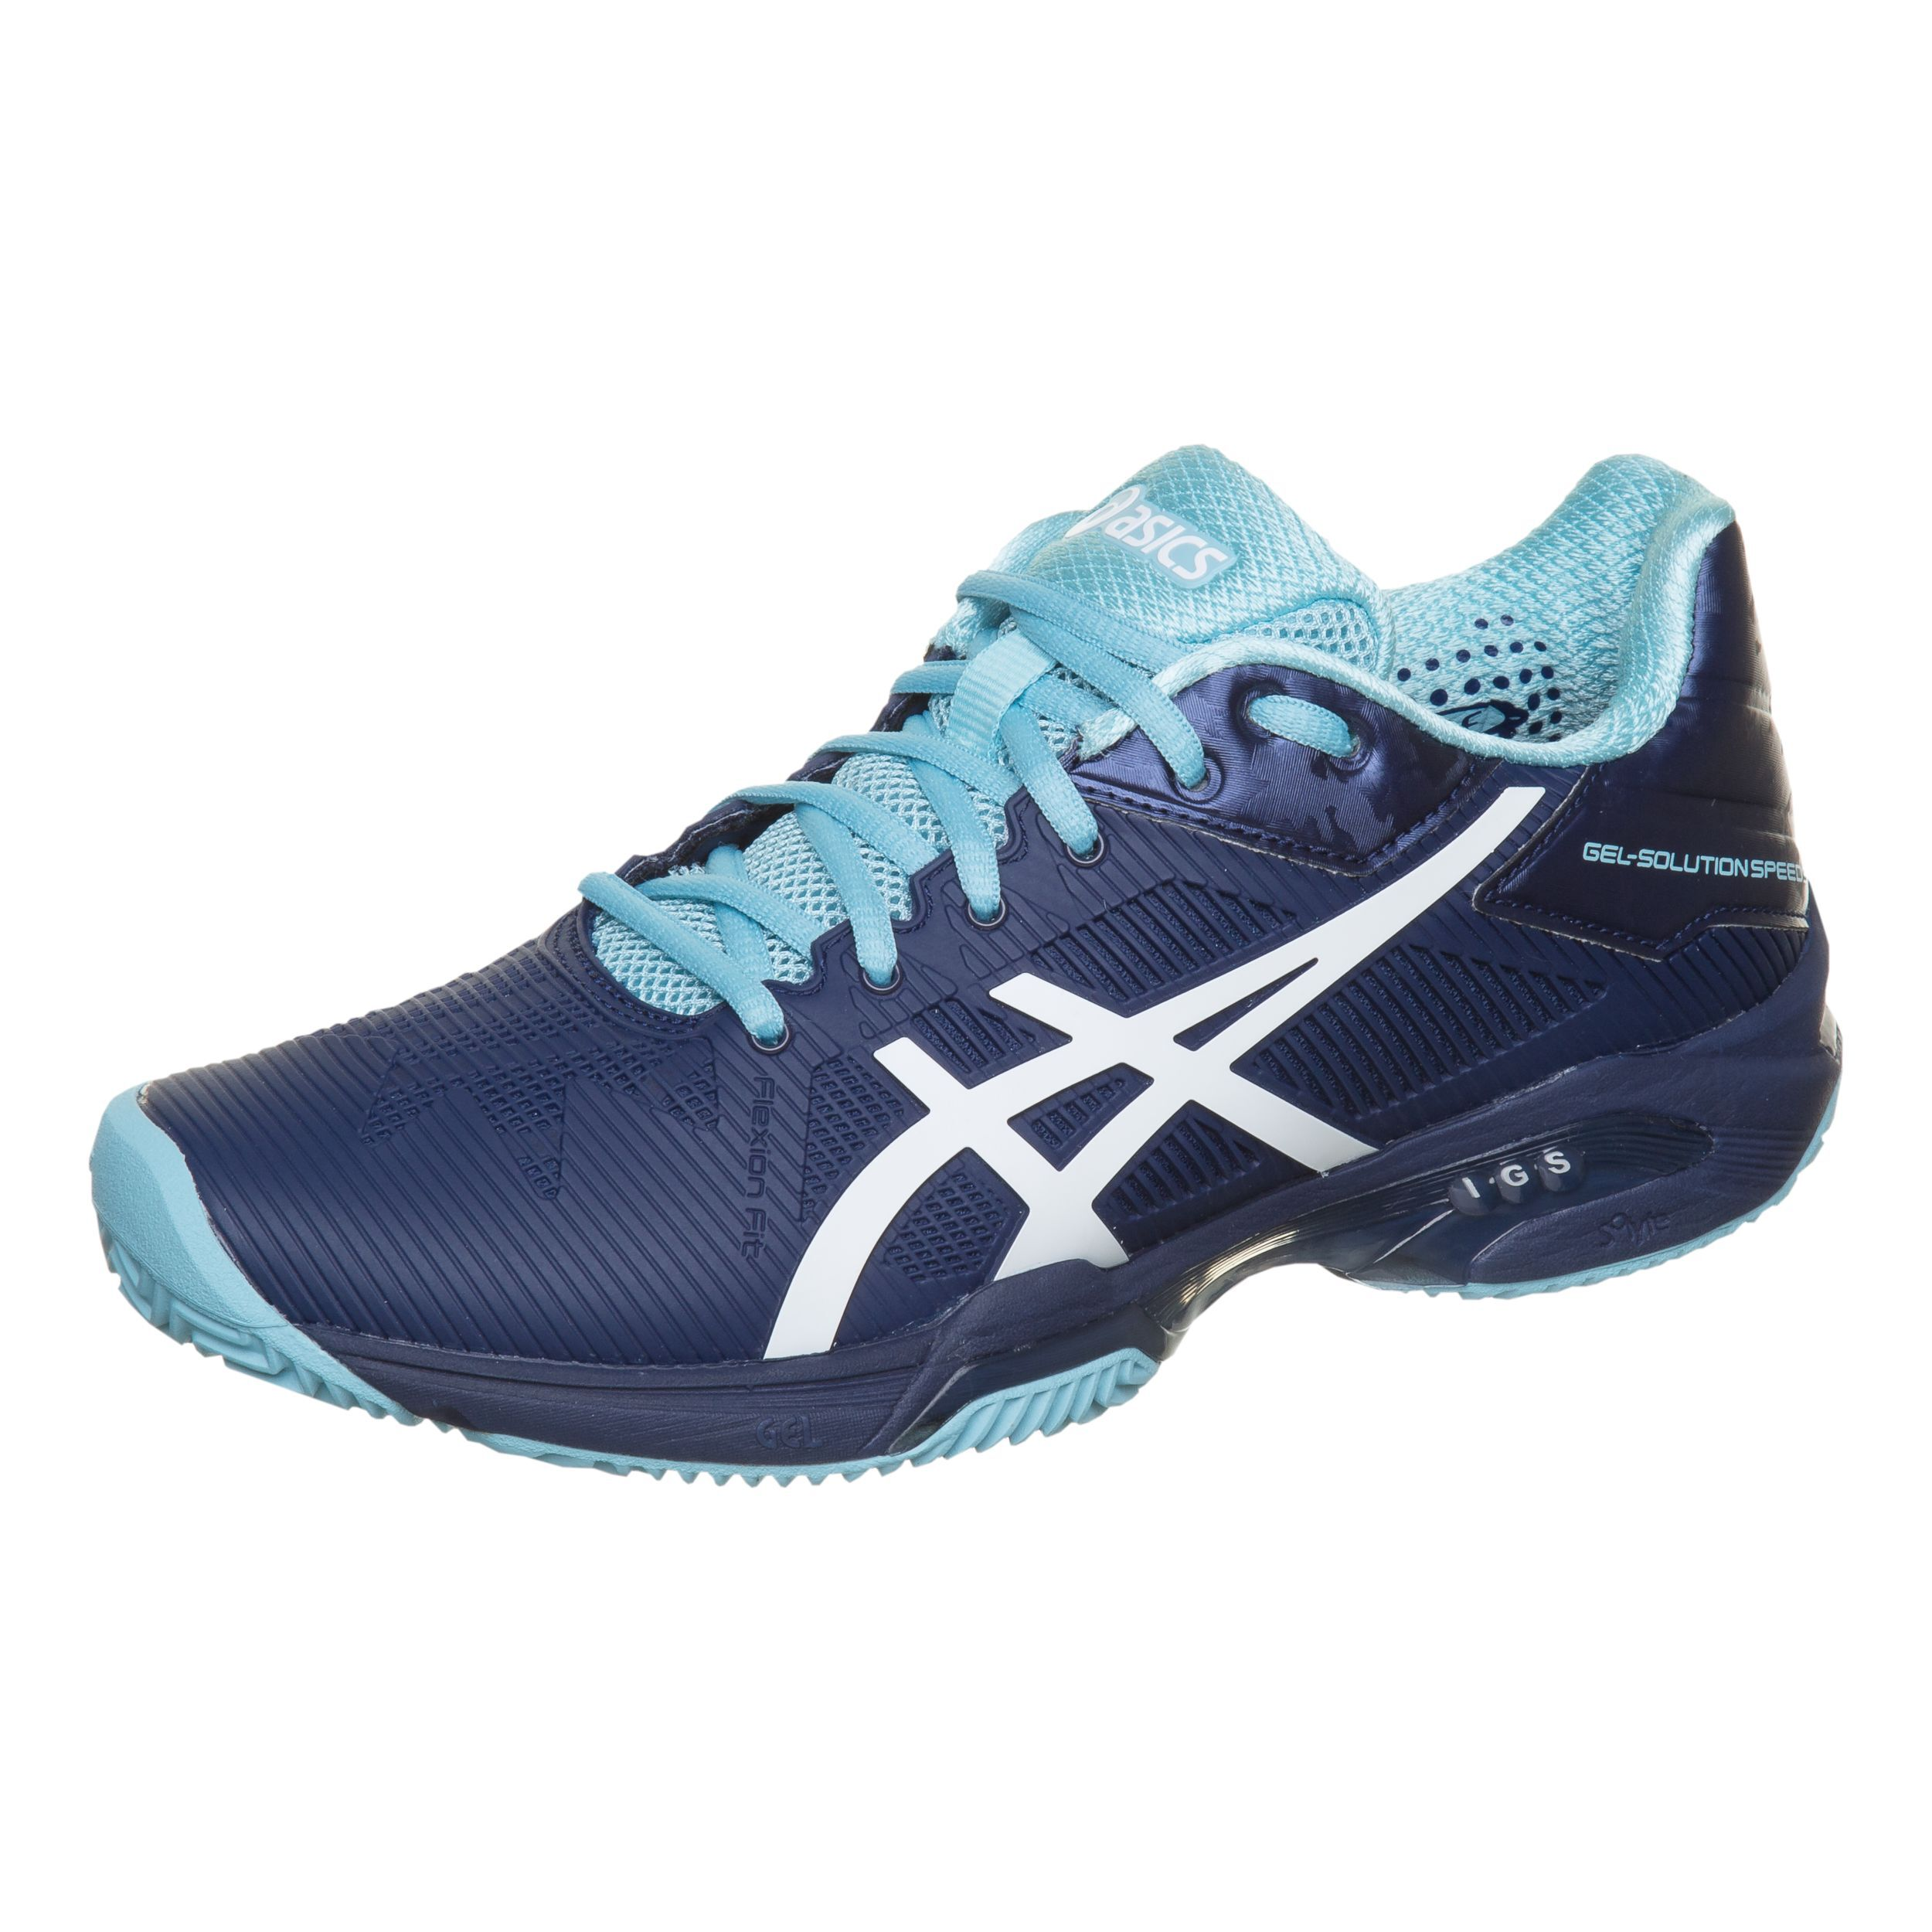 Asics Gel-Solution Speed 3 Clay Sandplatzschuh Damen - Dunkelblau ...